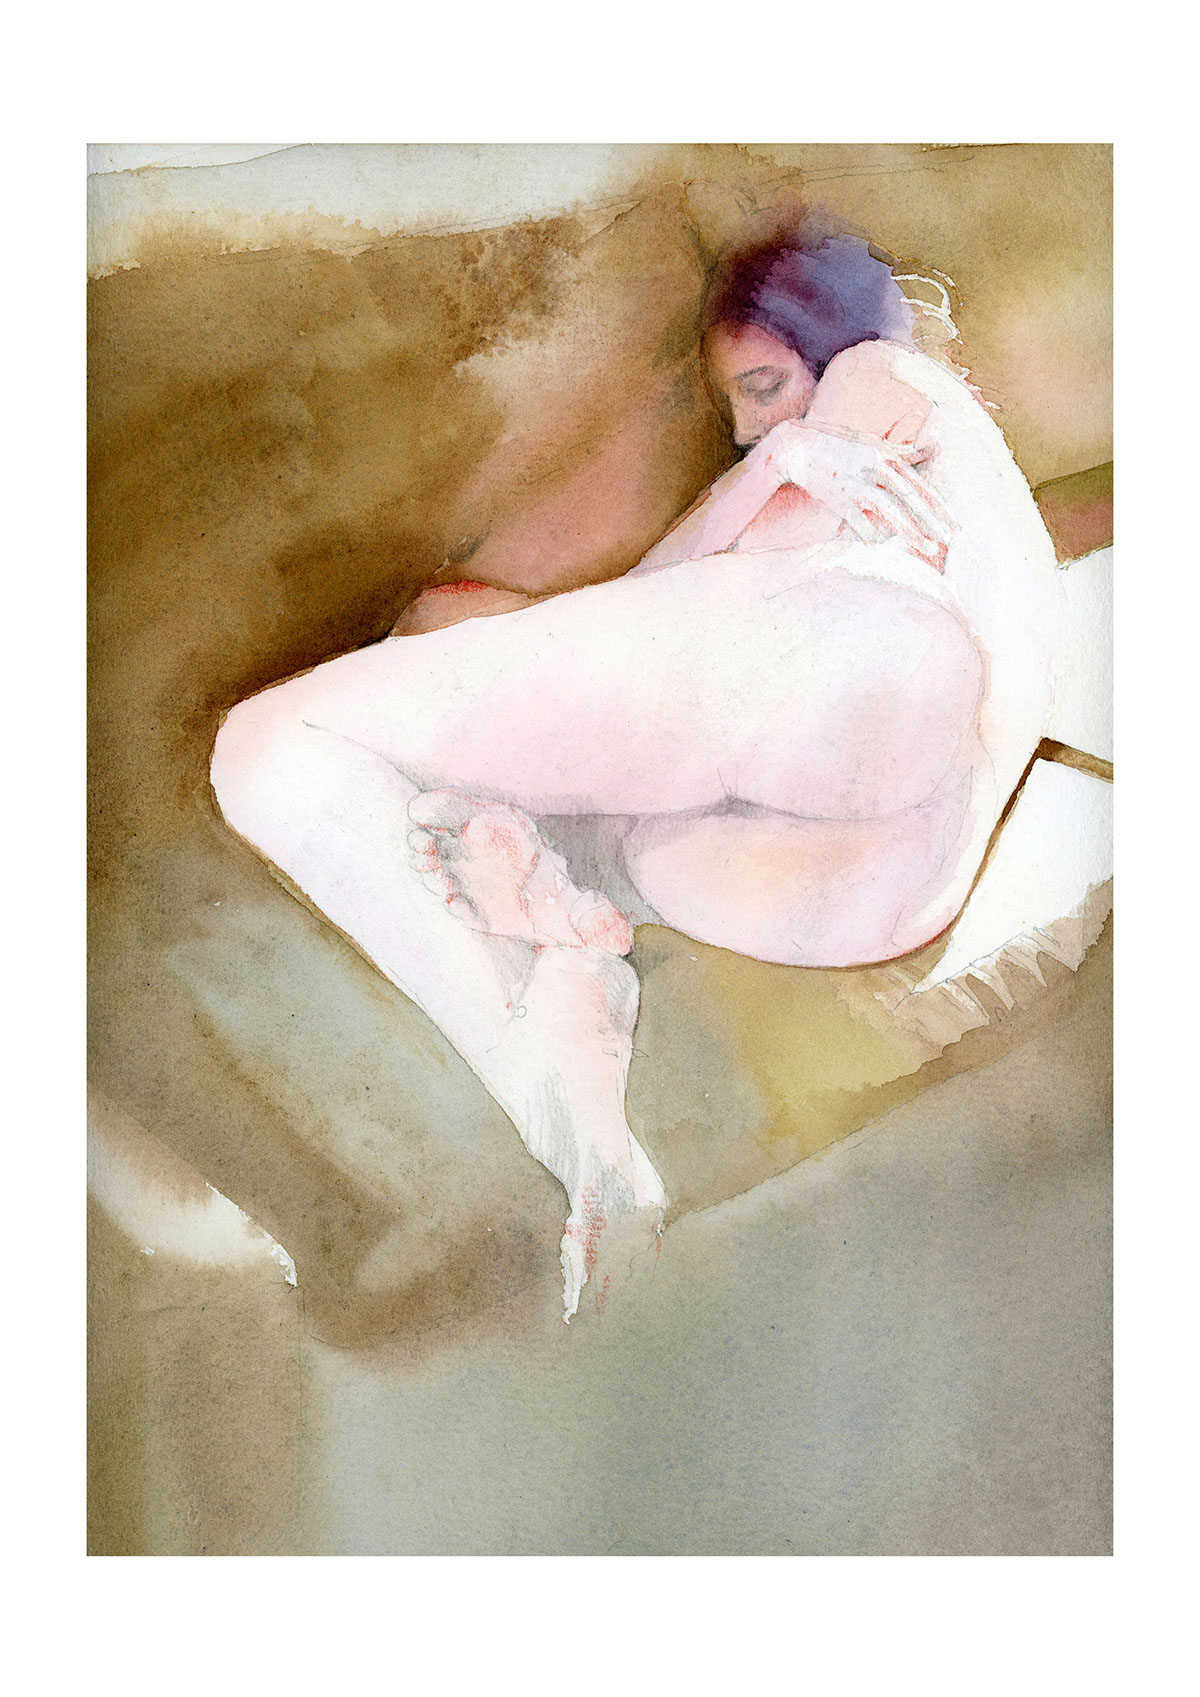 nadya kurbatov, sleep, ,30_40 cm, watercolor on paper